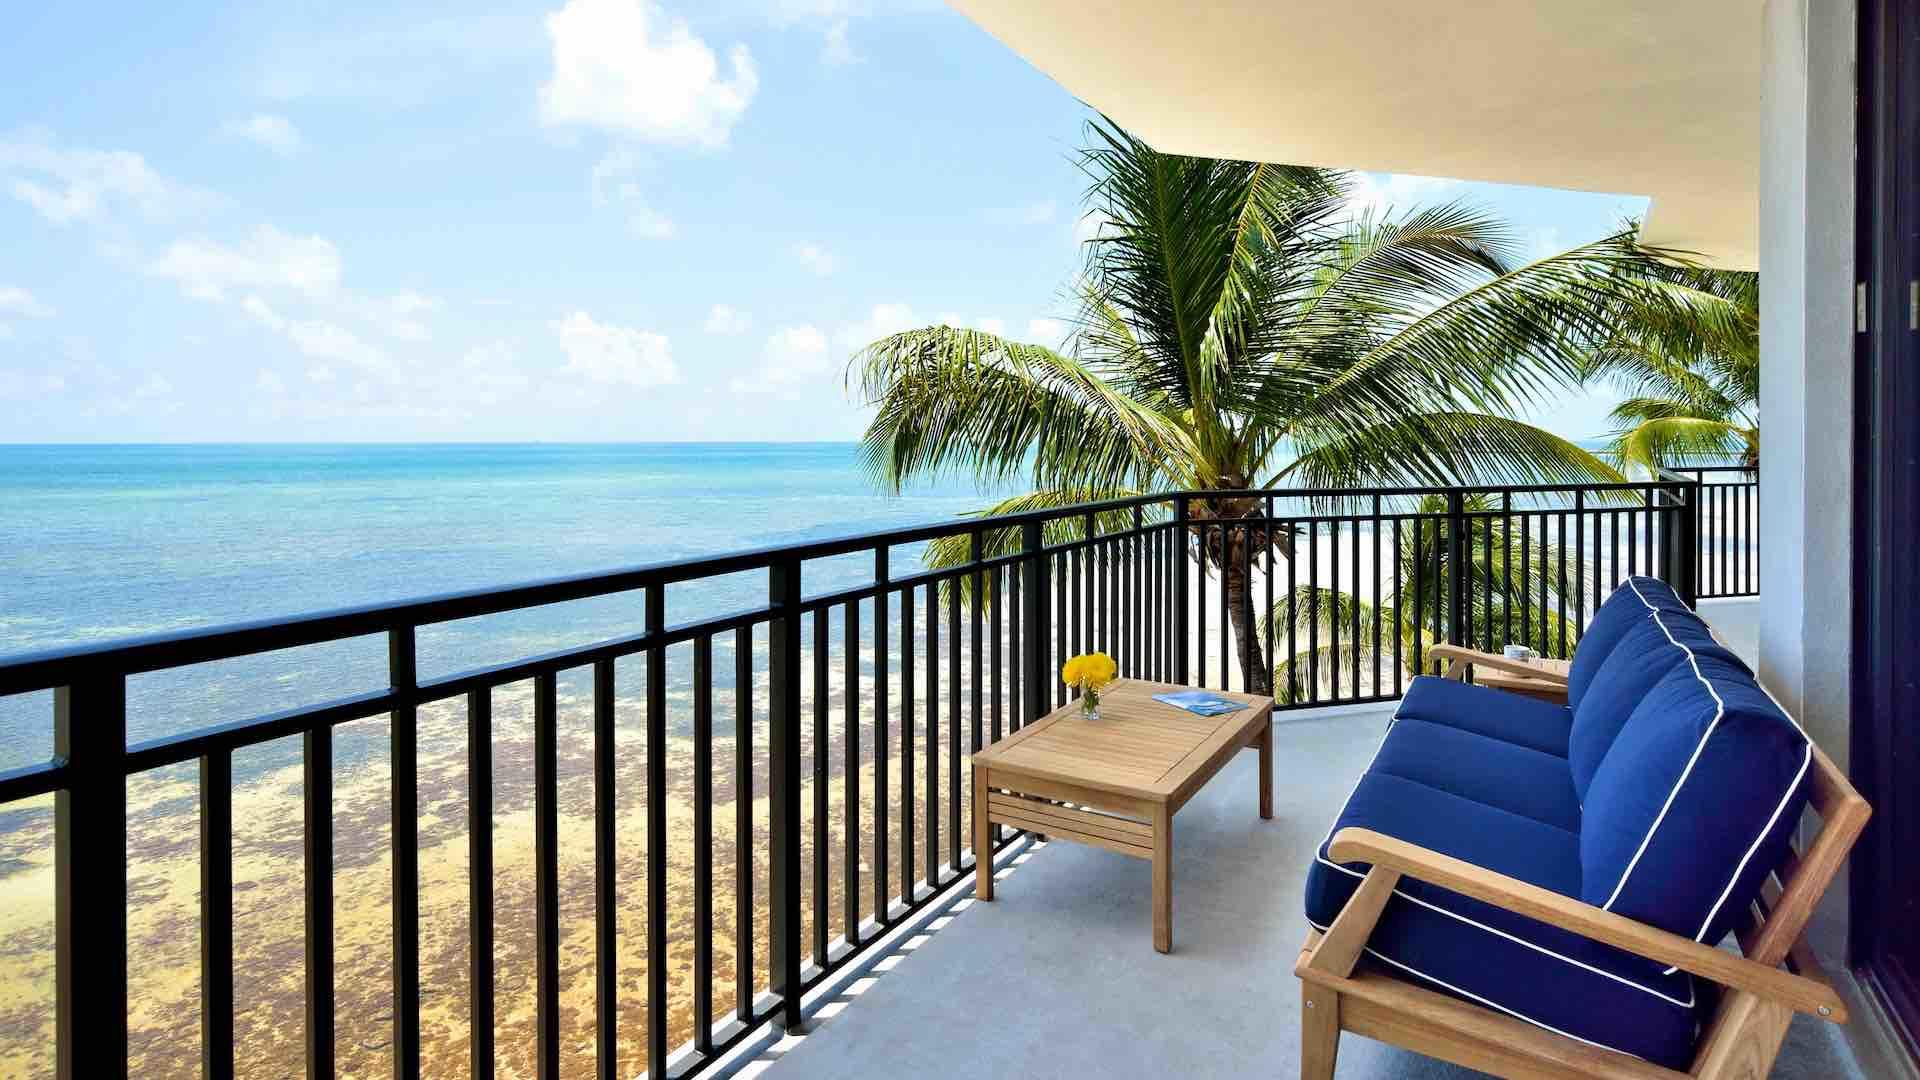 You could sit out on your balcony all day to admire the views of the Atlantic...